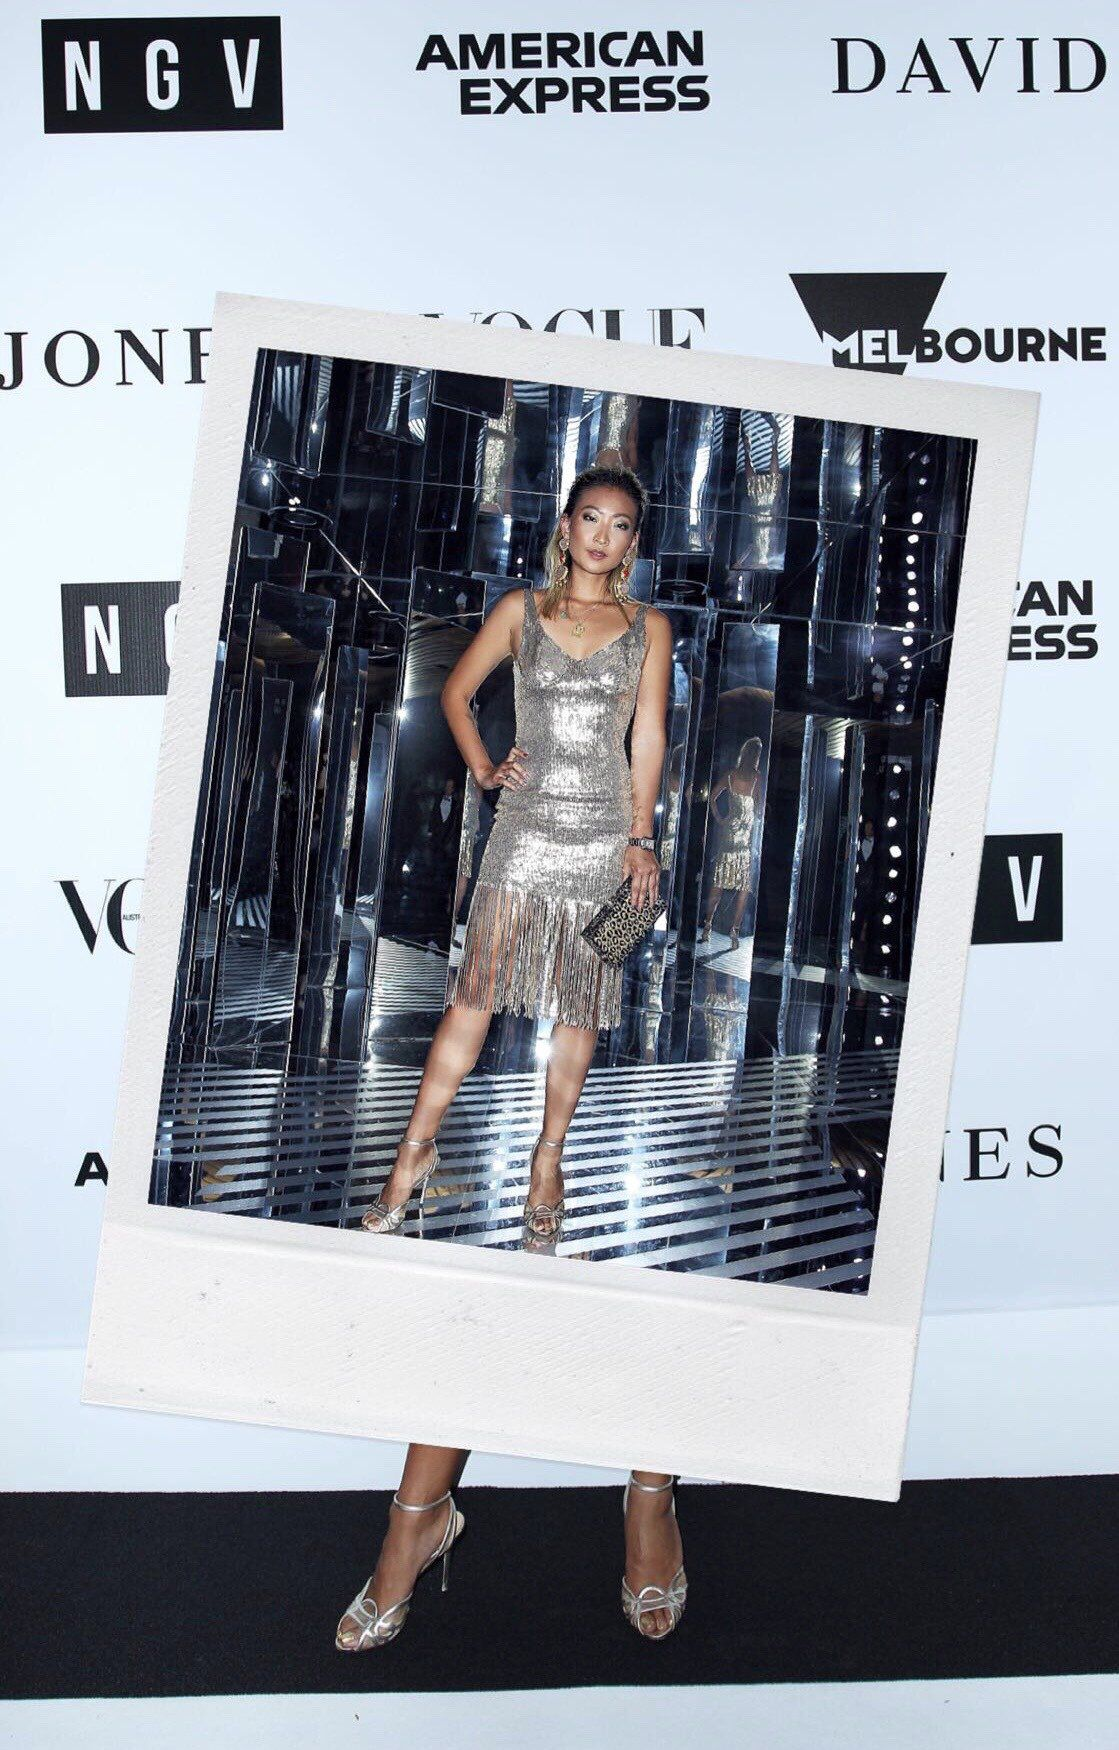 NGV Gala 2018, Melbourne, American Express